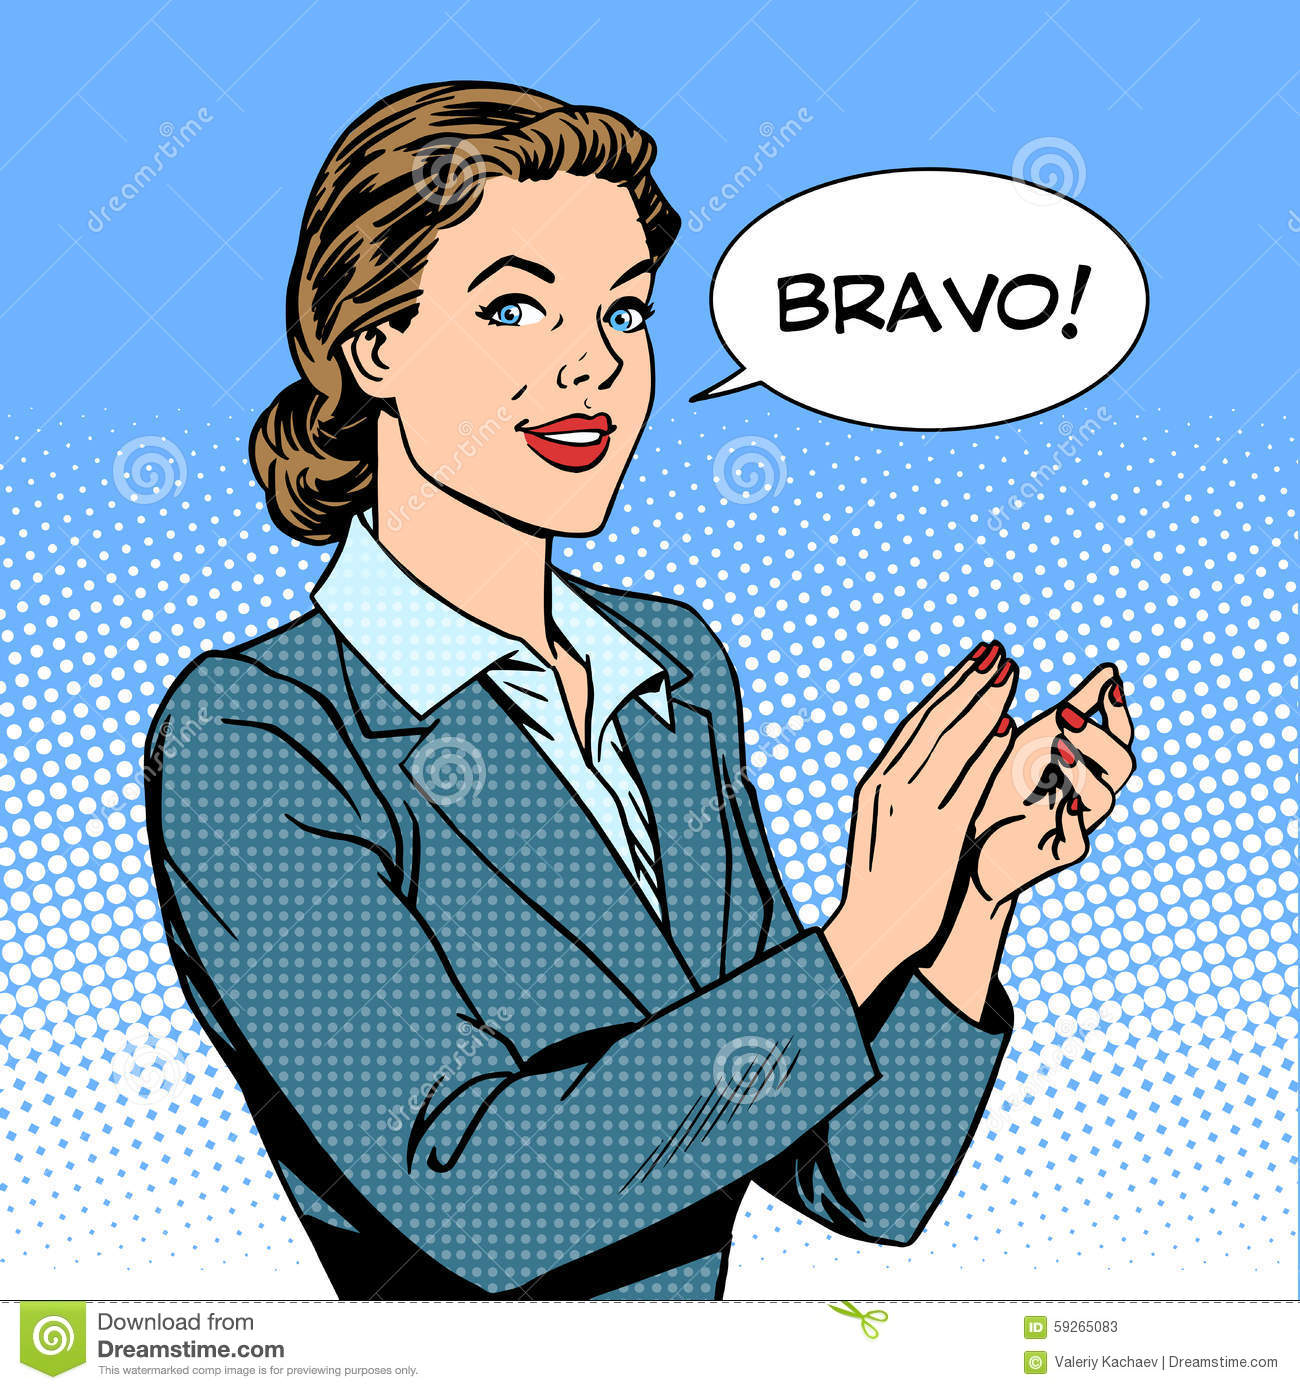 Image Bravo bravo stock illustrations – 956 bravo stock illustrations, vectors